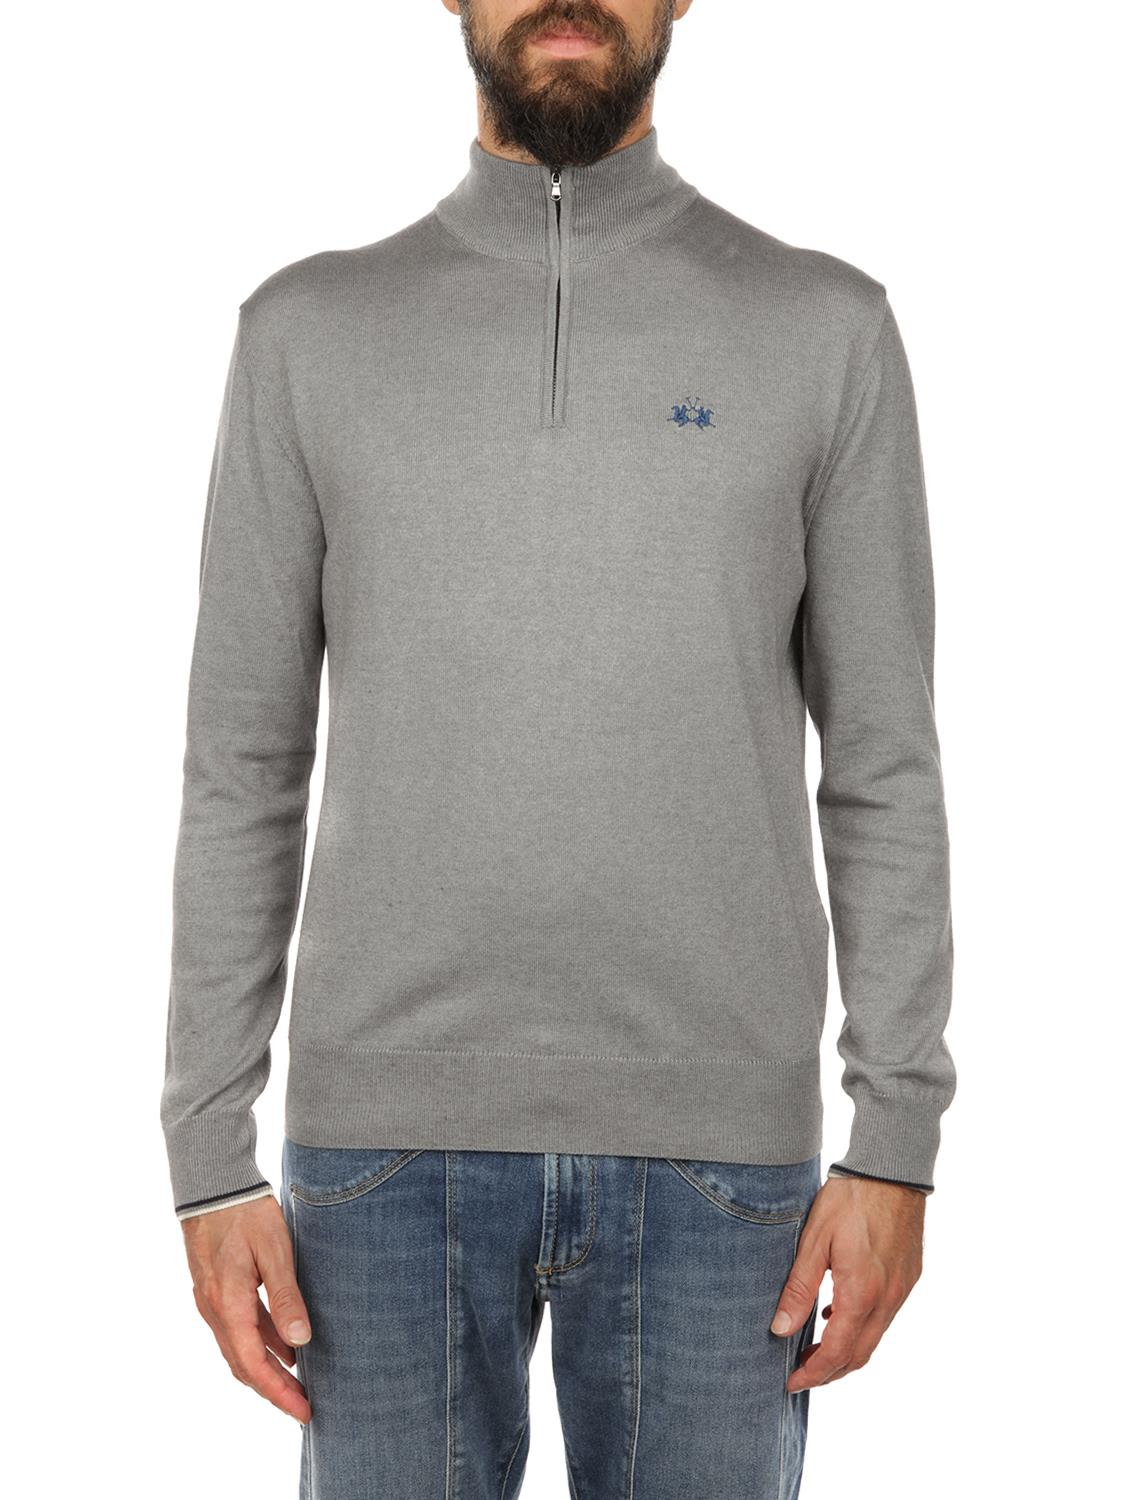 La Martina Zip Fastening Sweater